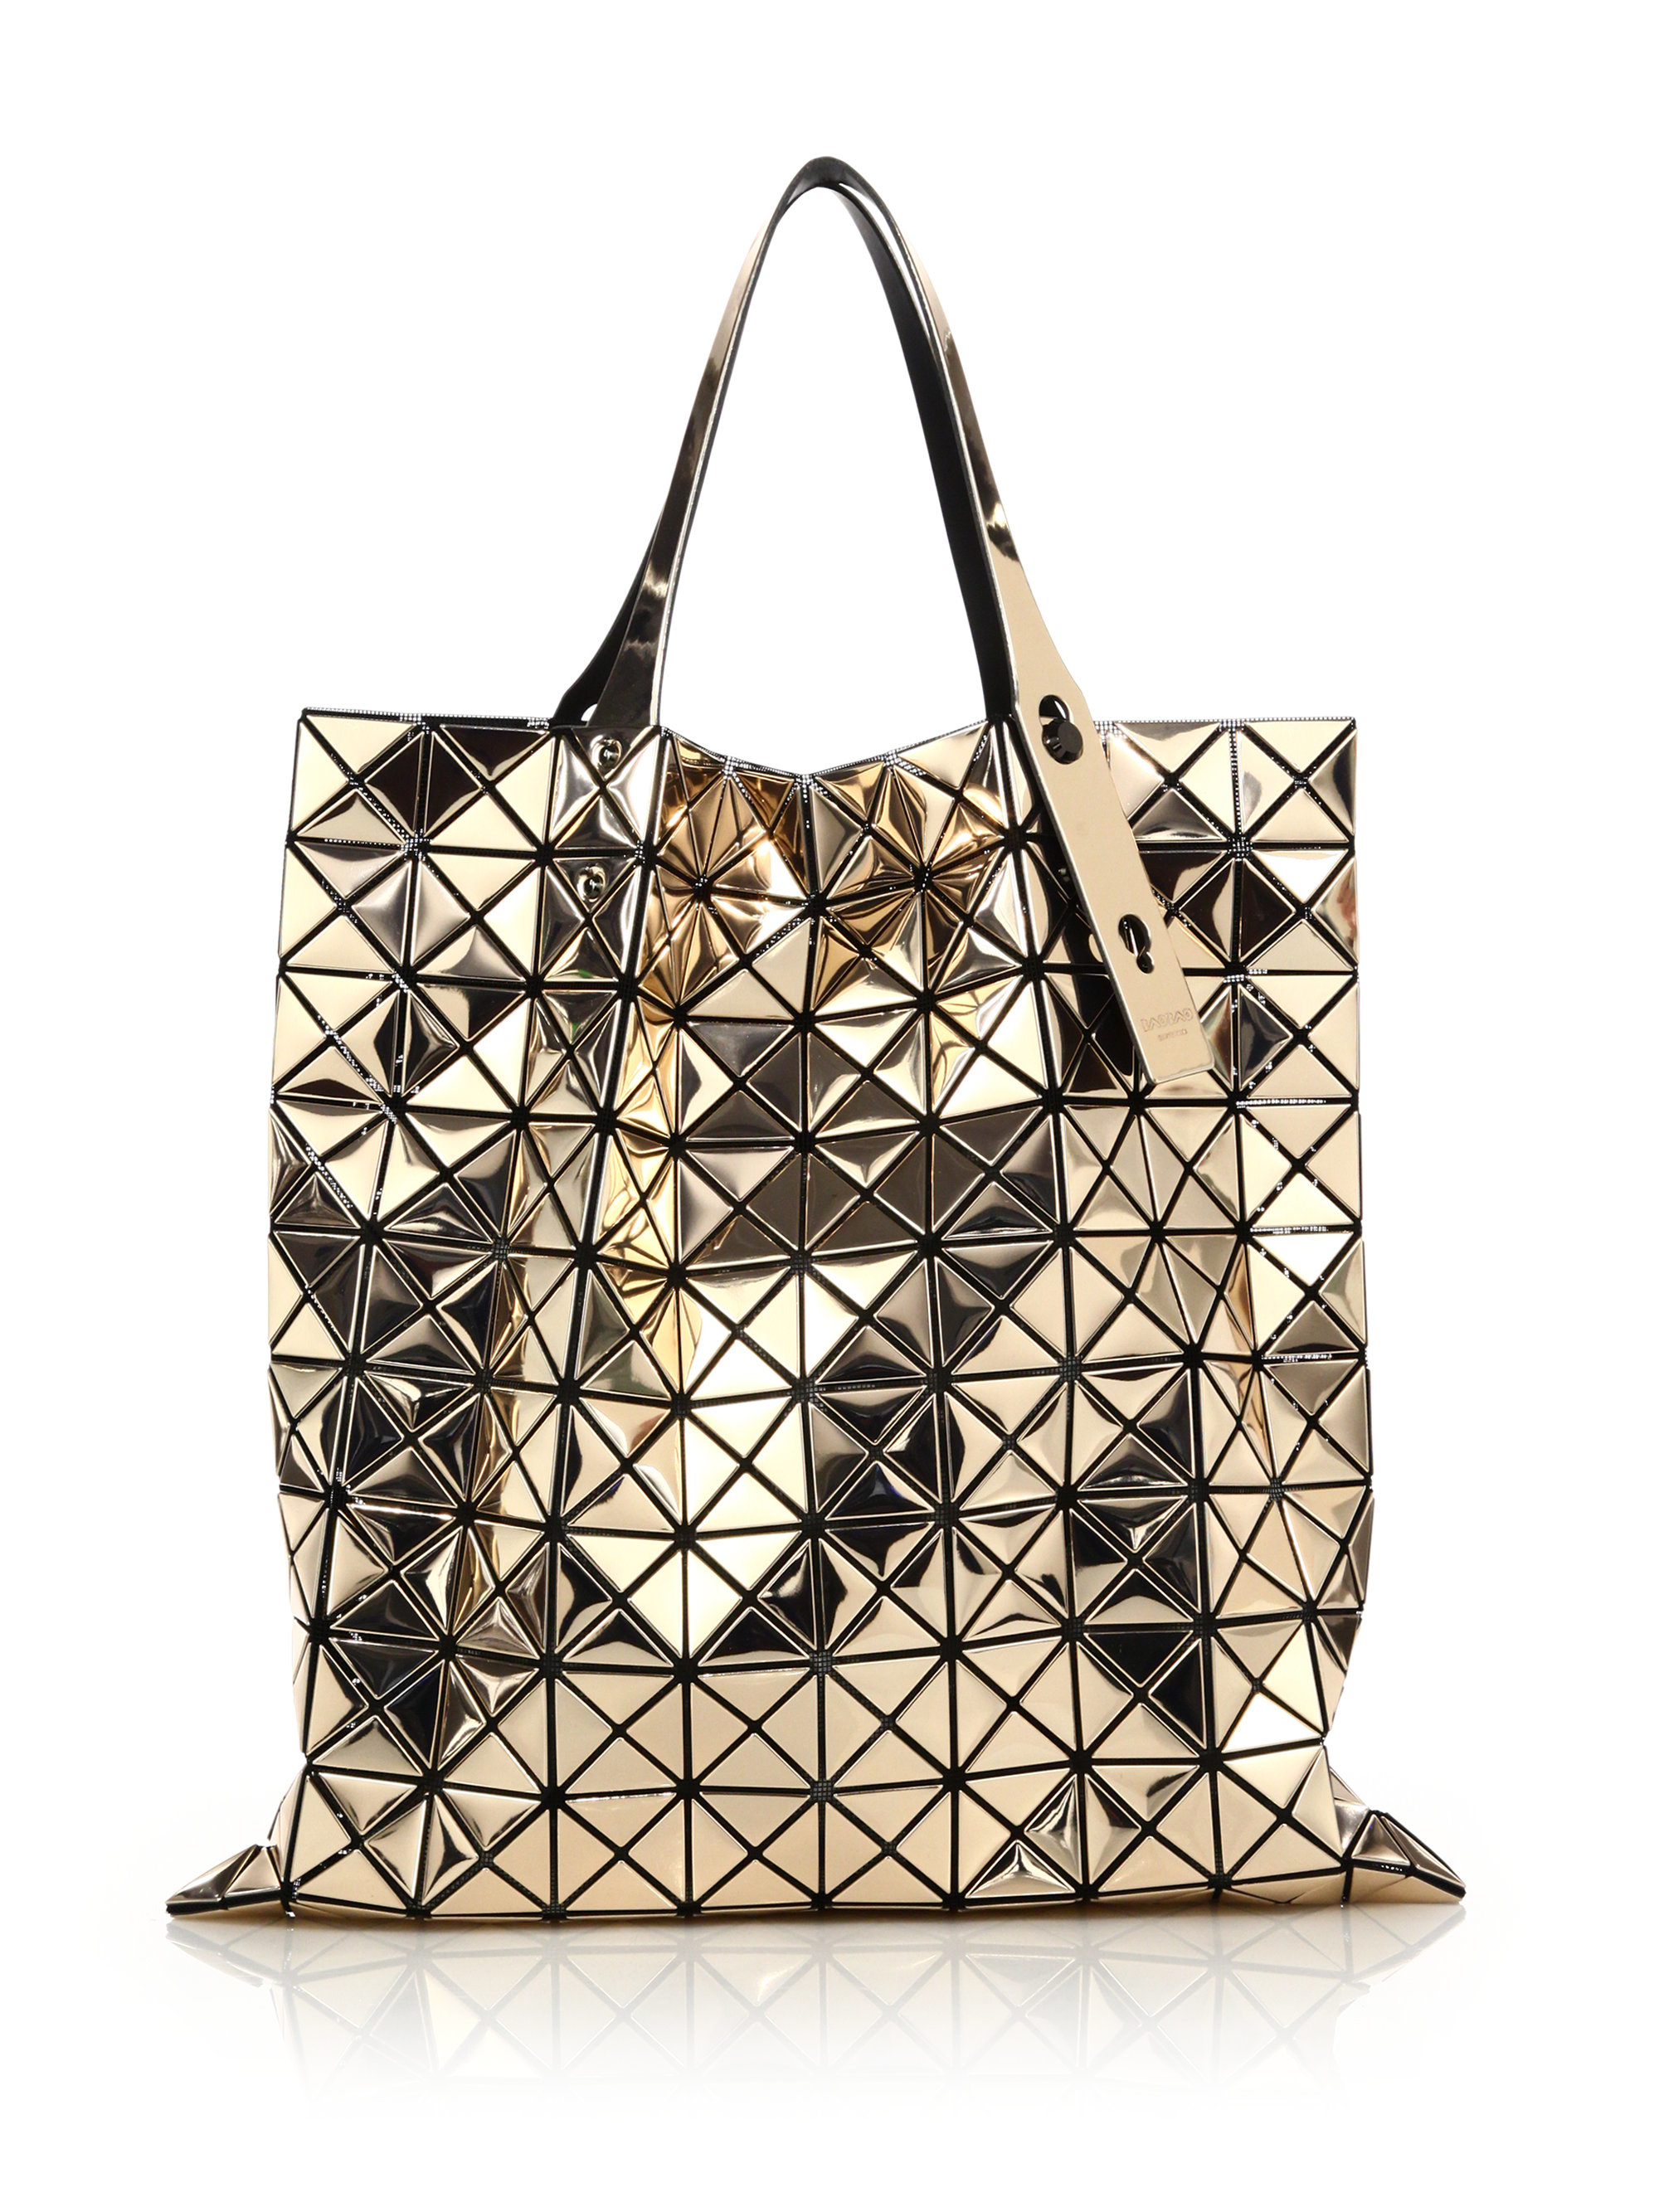 Lyst - Bao Bao Issey Miyake Platinum Faux Patent Leather Tote in ... 54de56eb8d9af